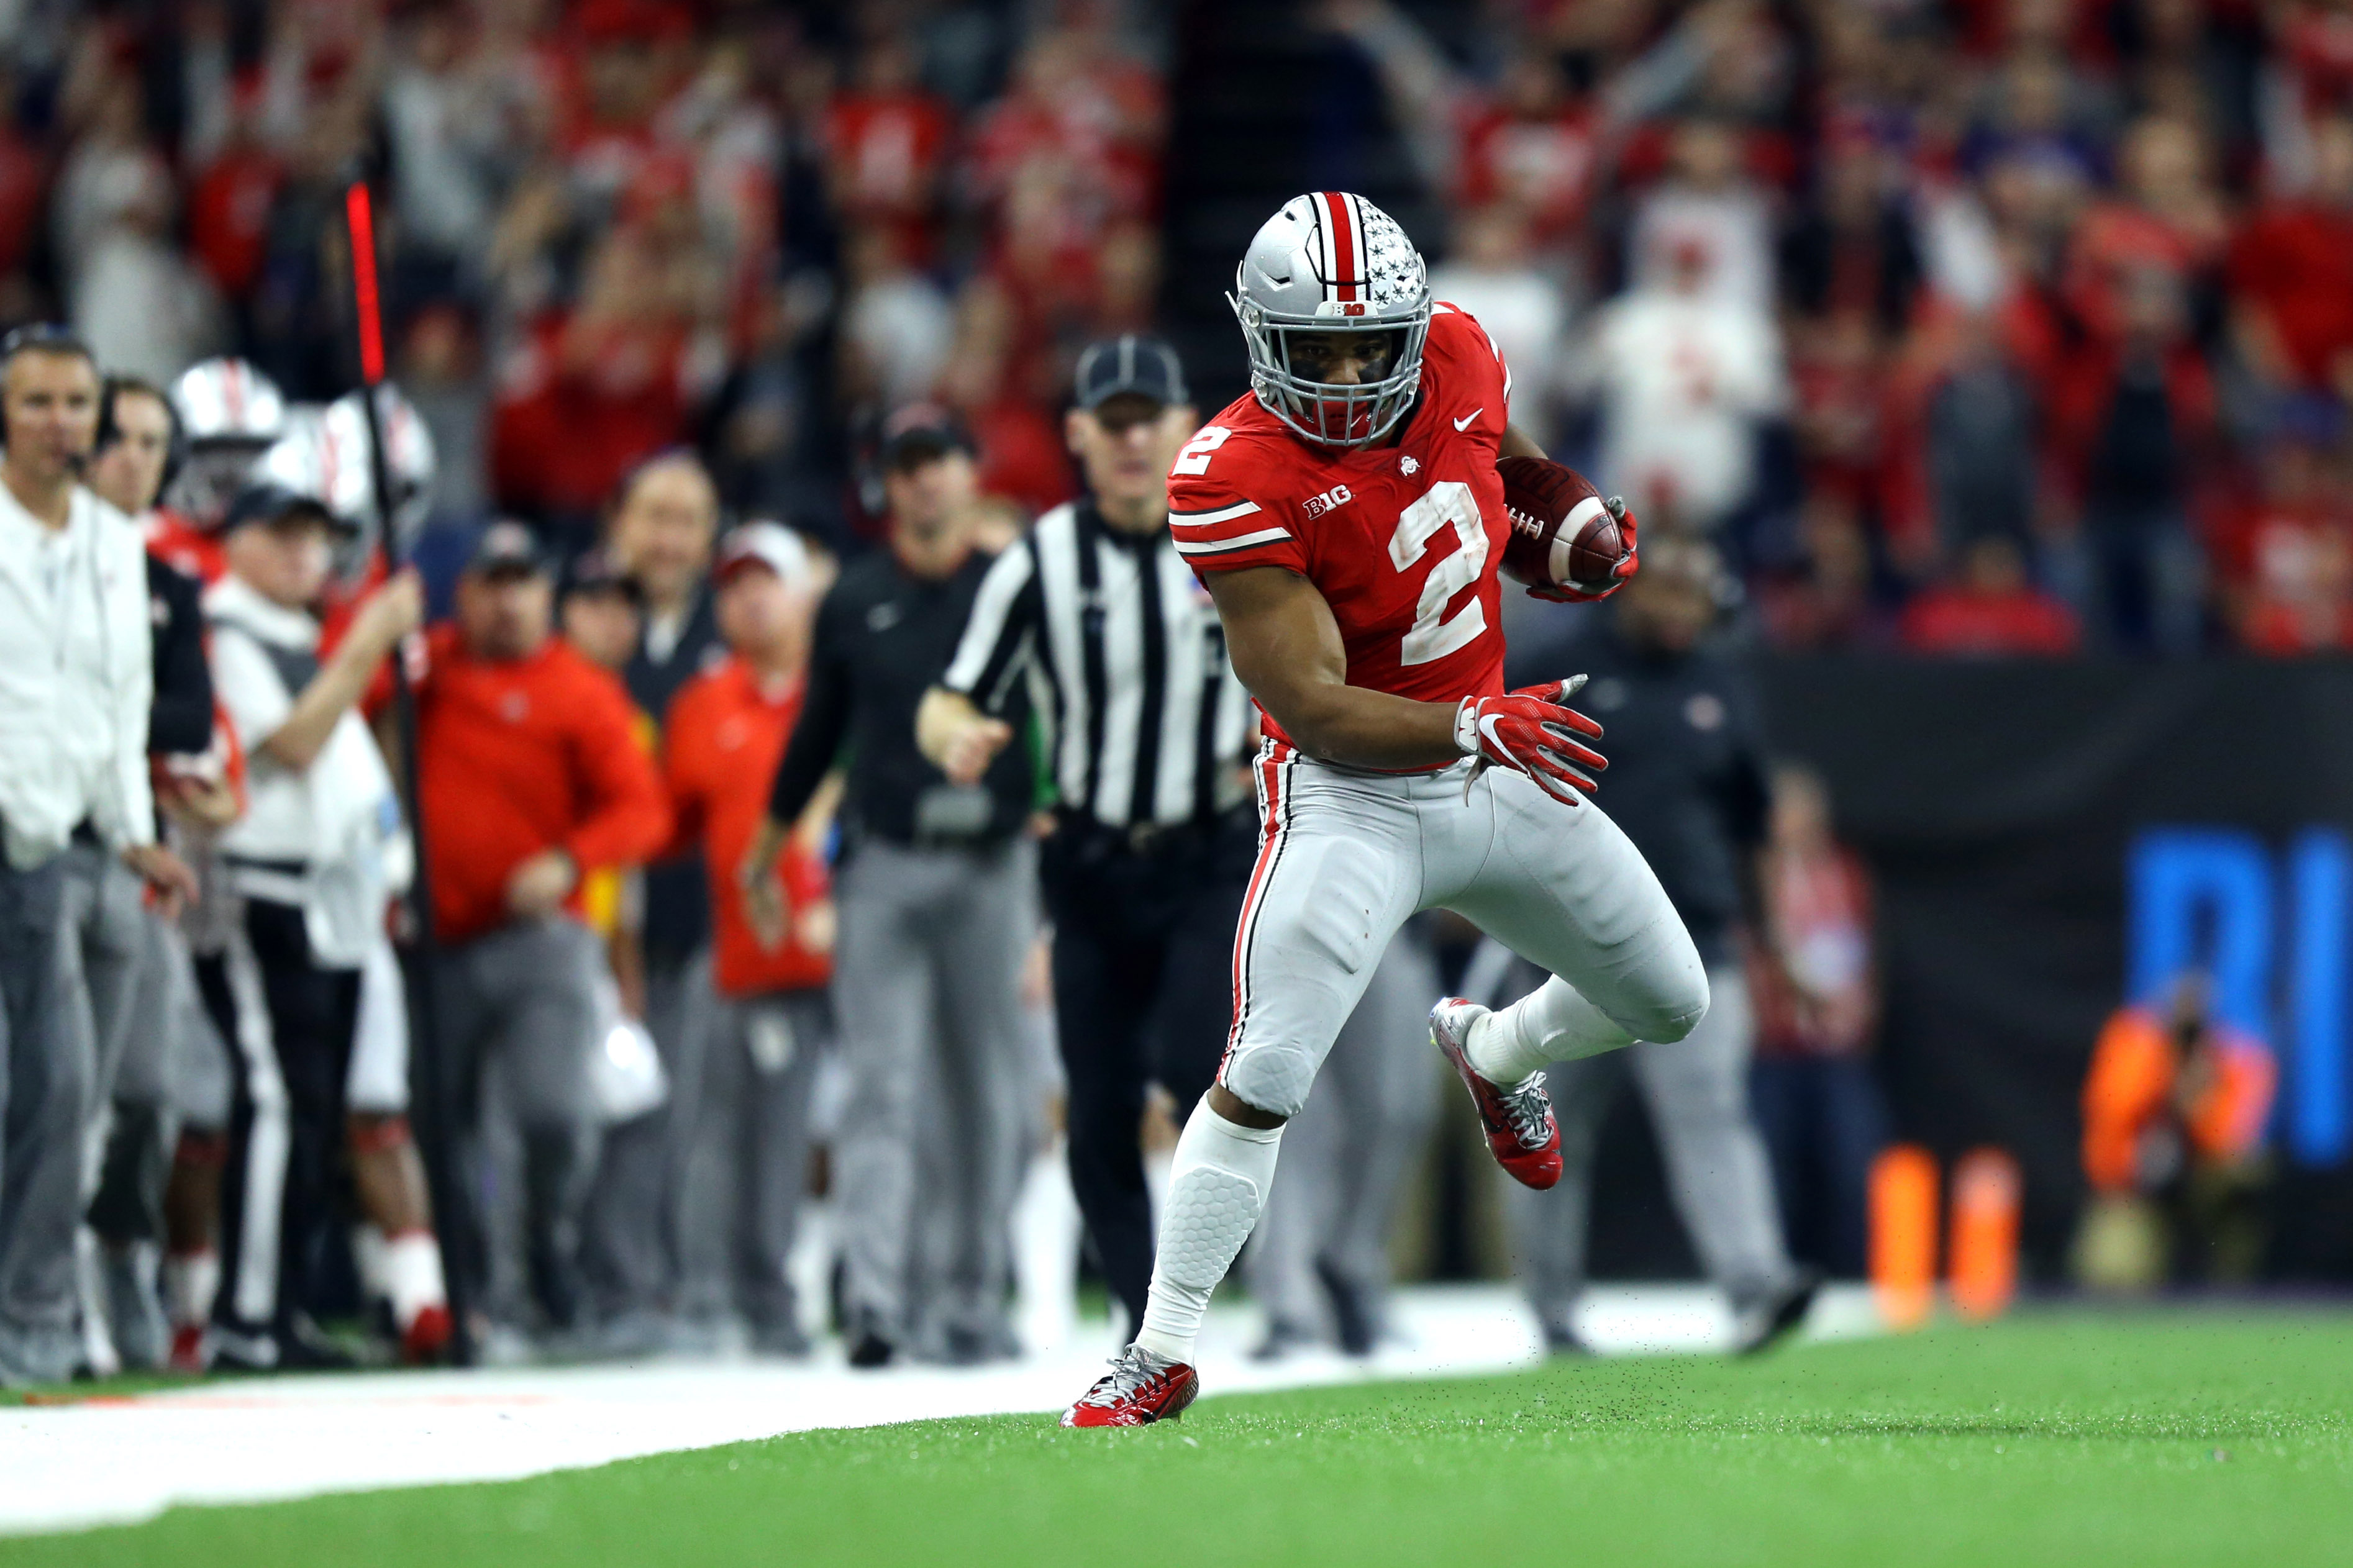 super popular d0075 3f92b Ohio State's J.K. Dobbins and Mike Weber see value in shared ...